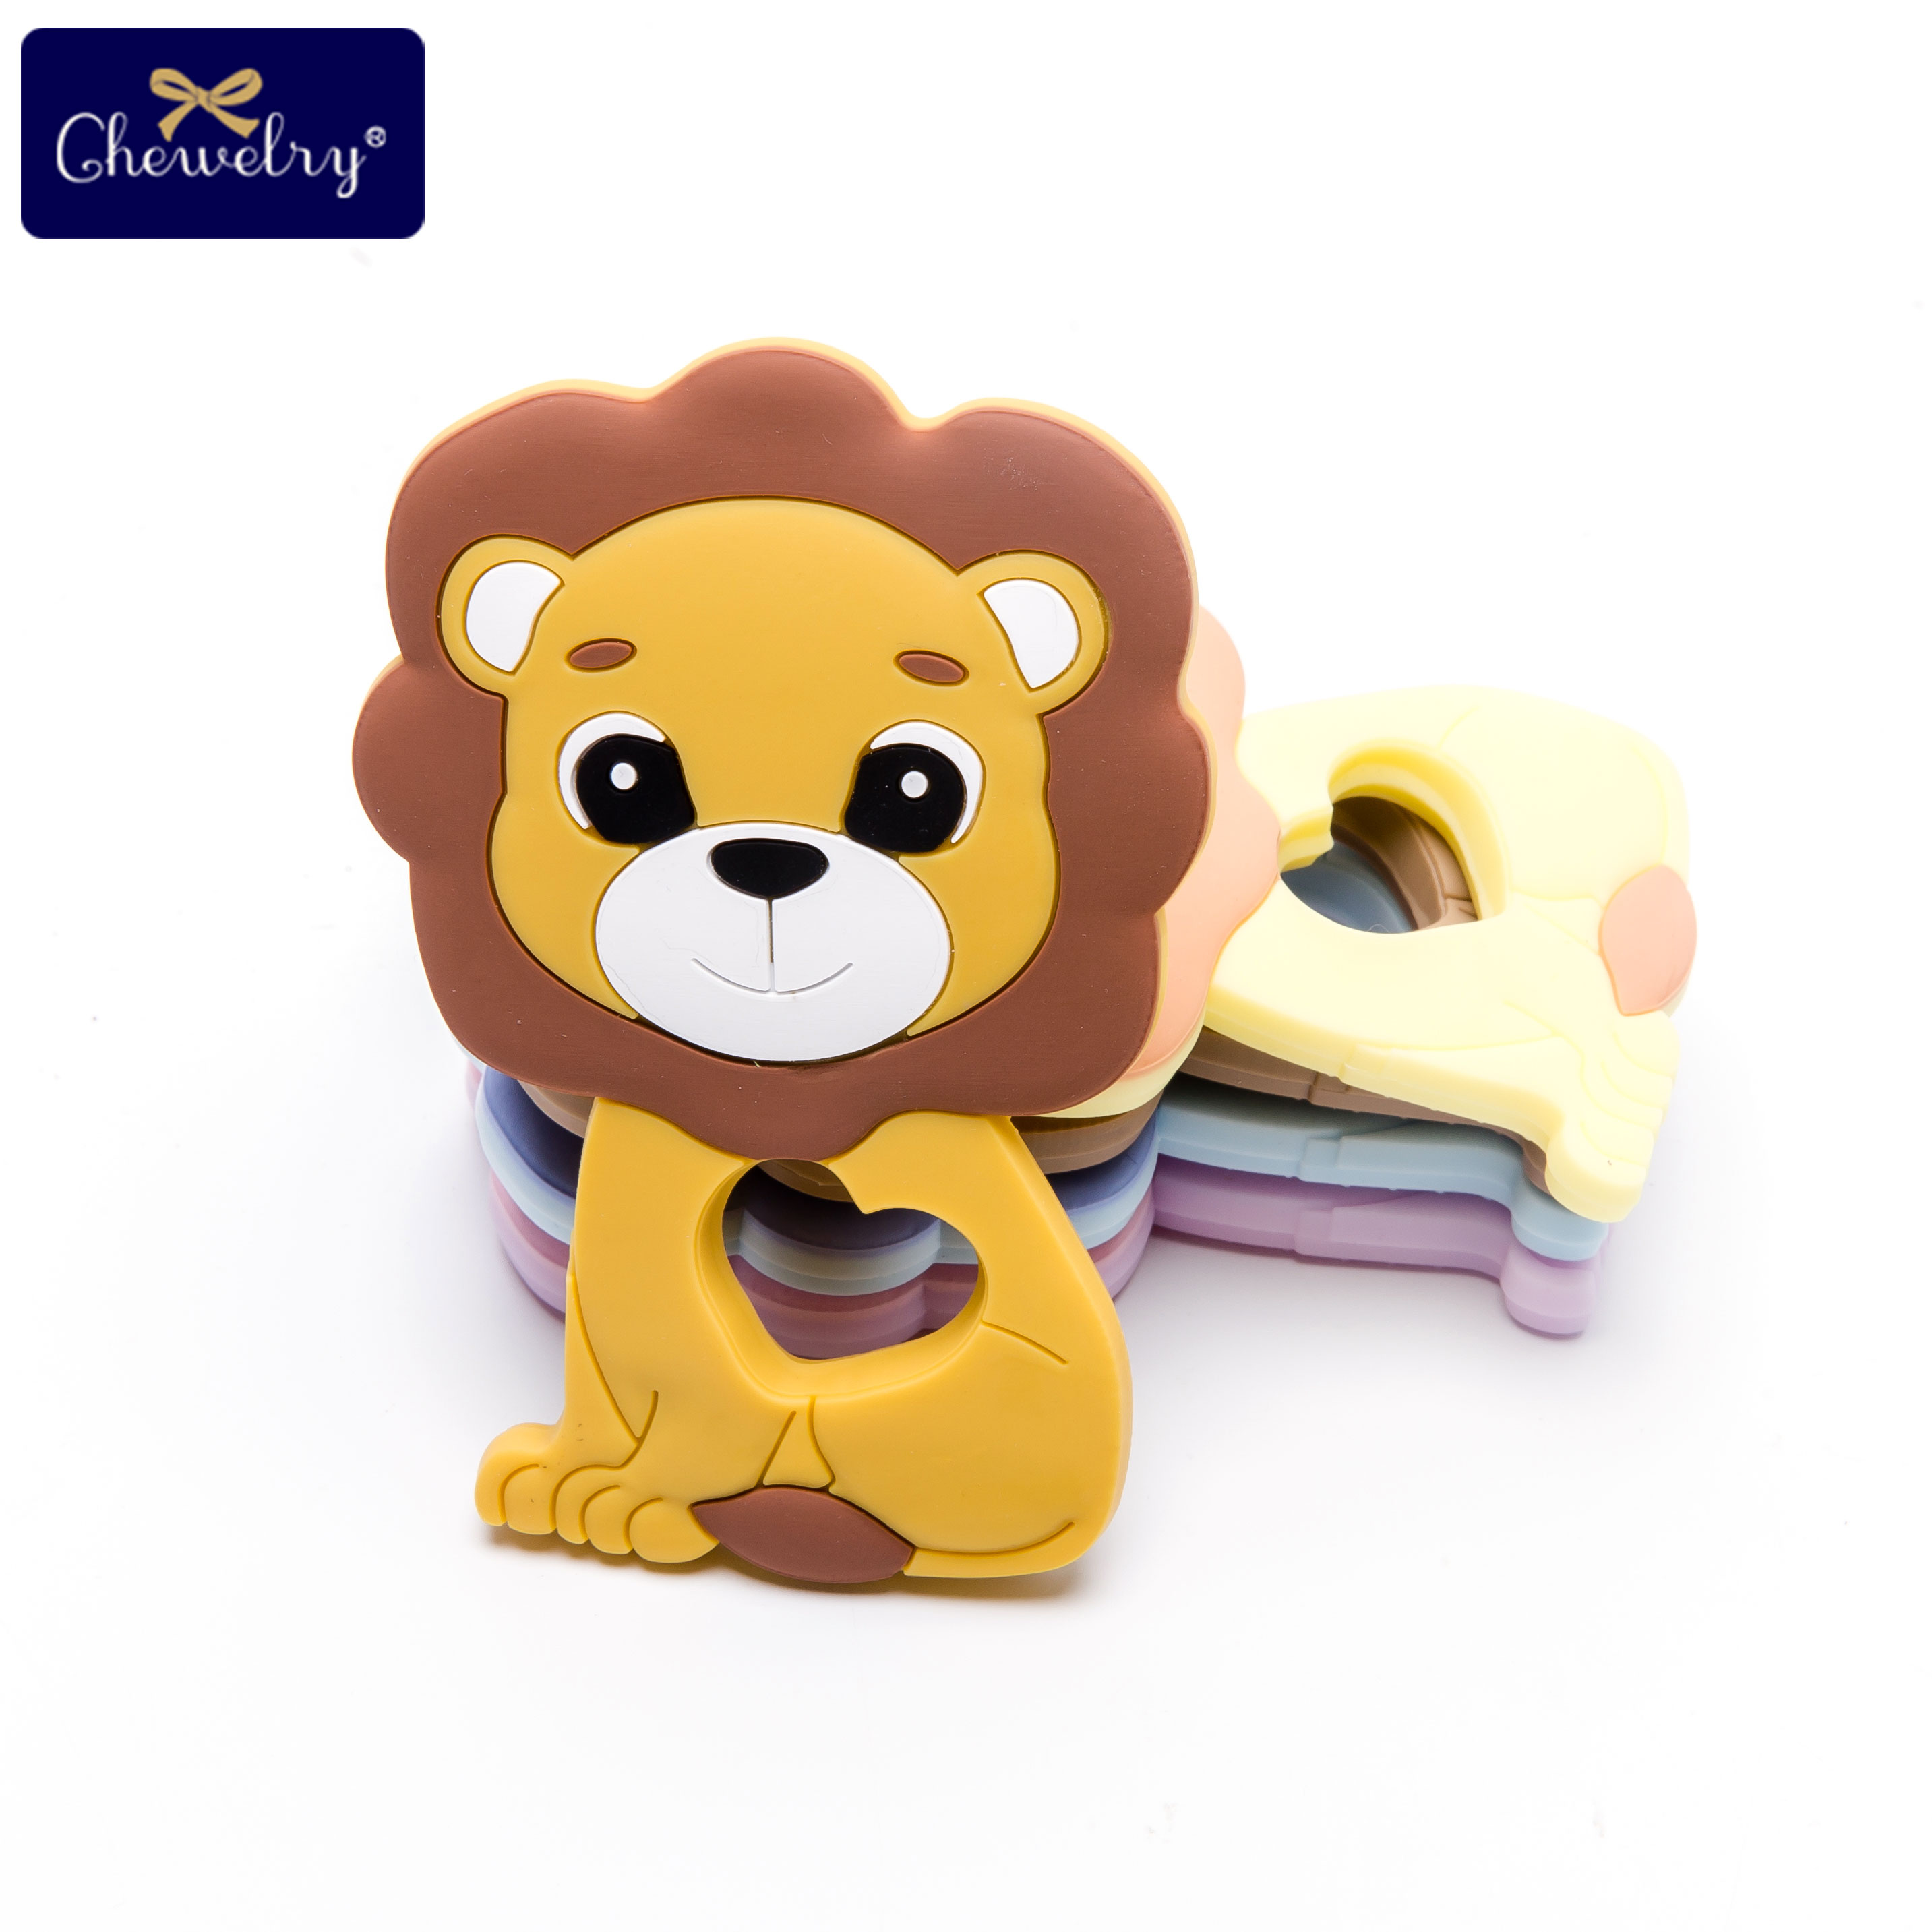 5pc Baby Silicone Teether Lion Pendant Food Grade Perle Silicone Beads Teething Silicone Rodents Chewable Children'S Goods Toys